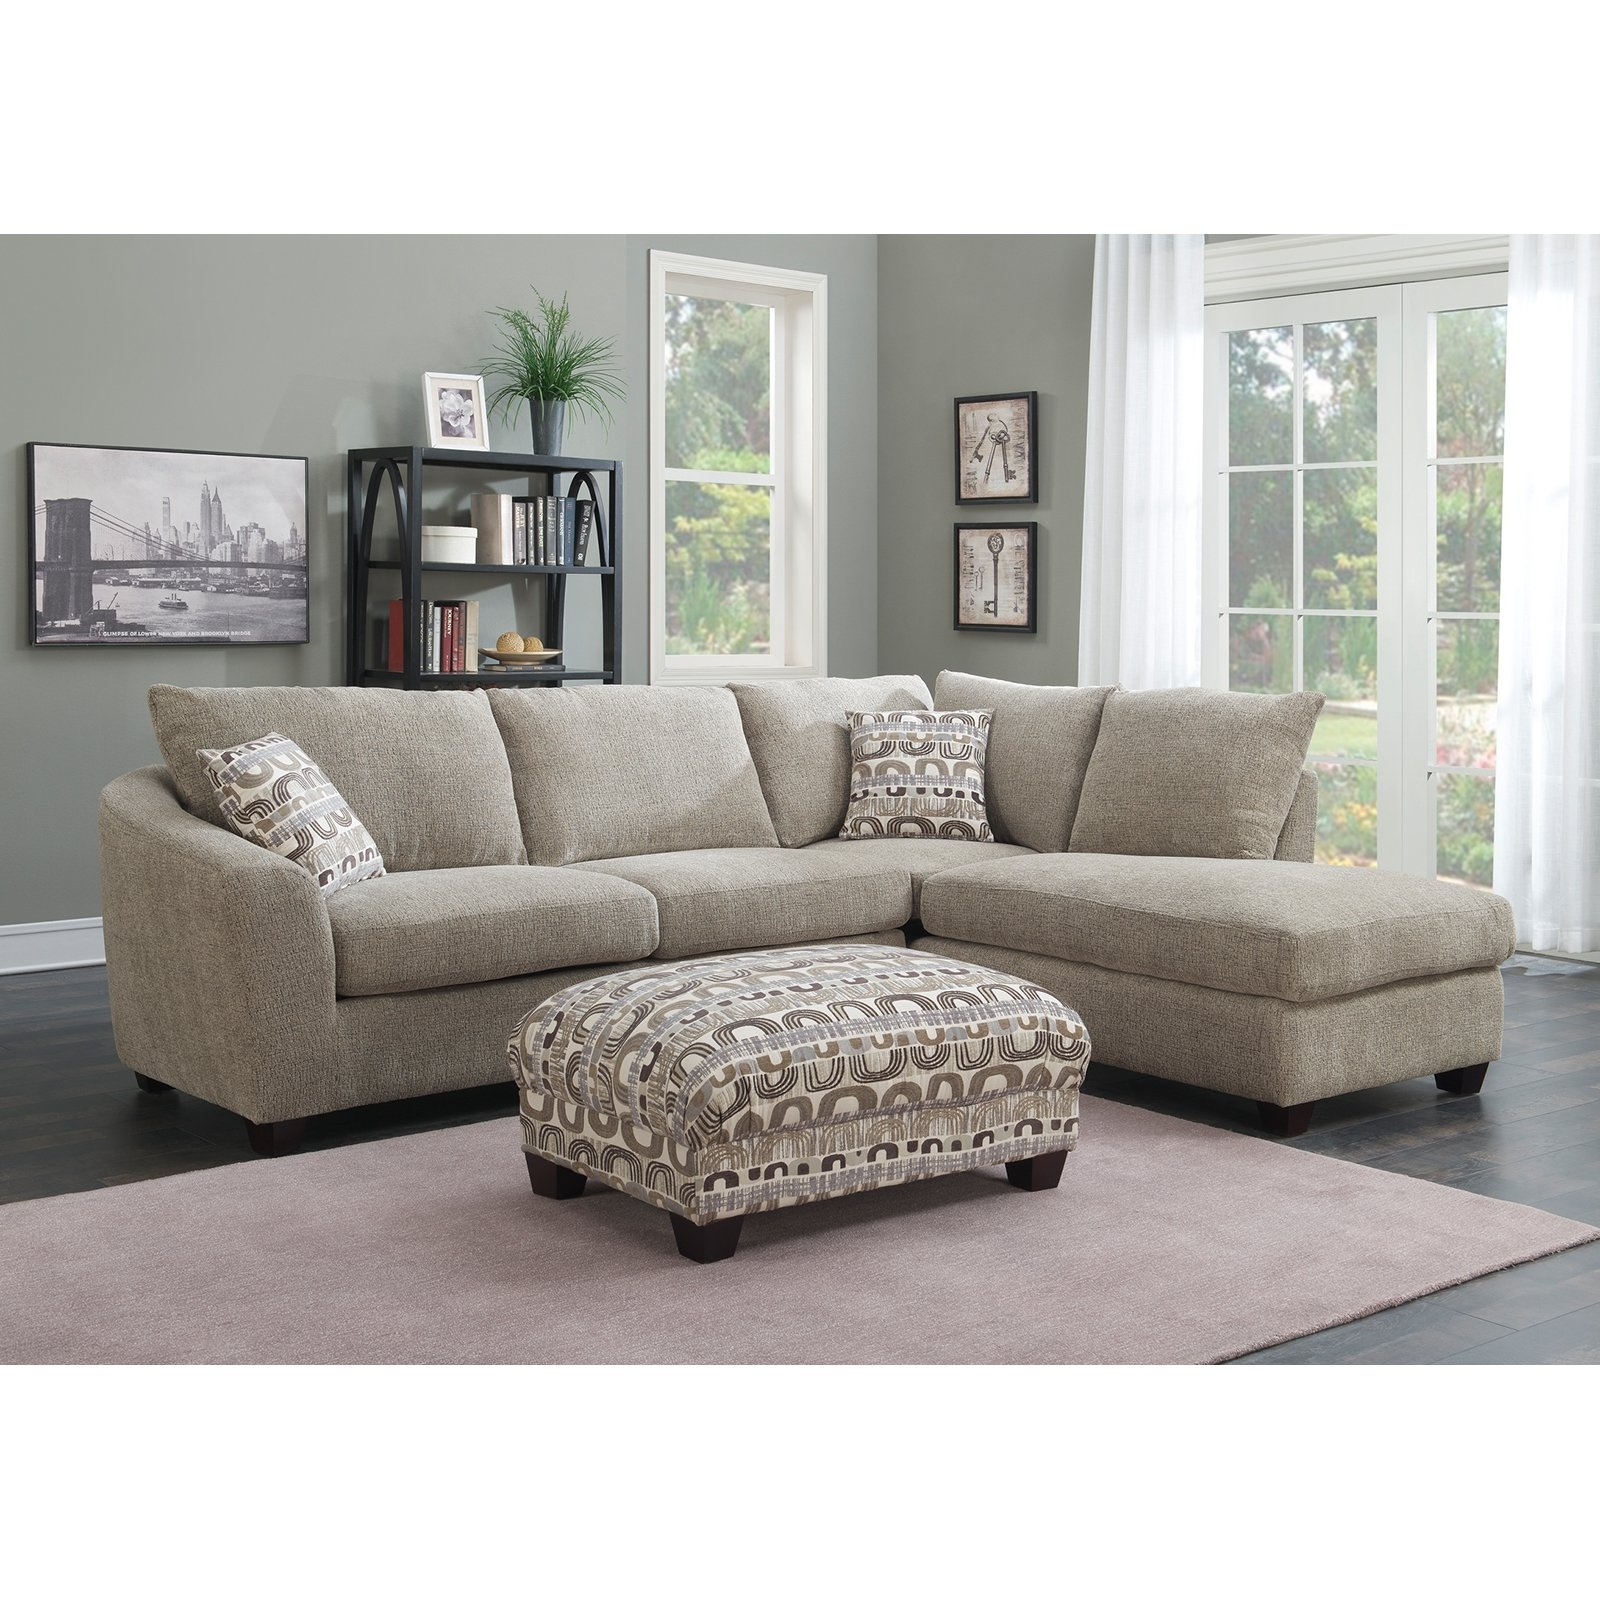 Emerald Home Urbana Piece Sectional Sofa With Chaise Couch Double Within Kerri 2 Piece Sectionals With Raf Chaise (Photo 9 of 30)